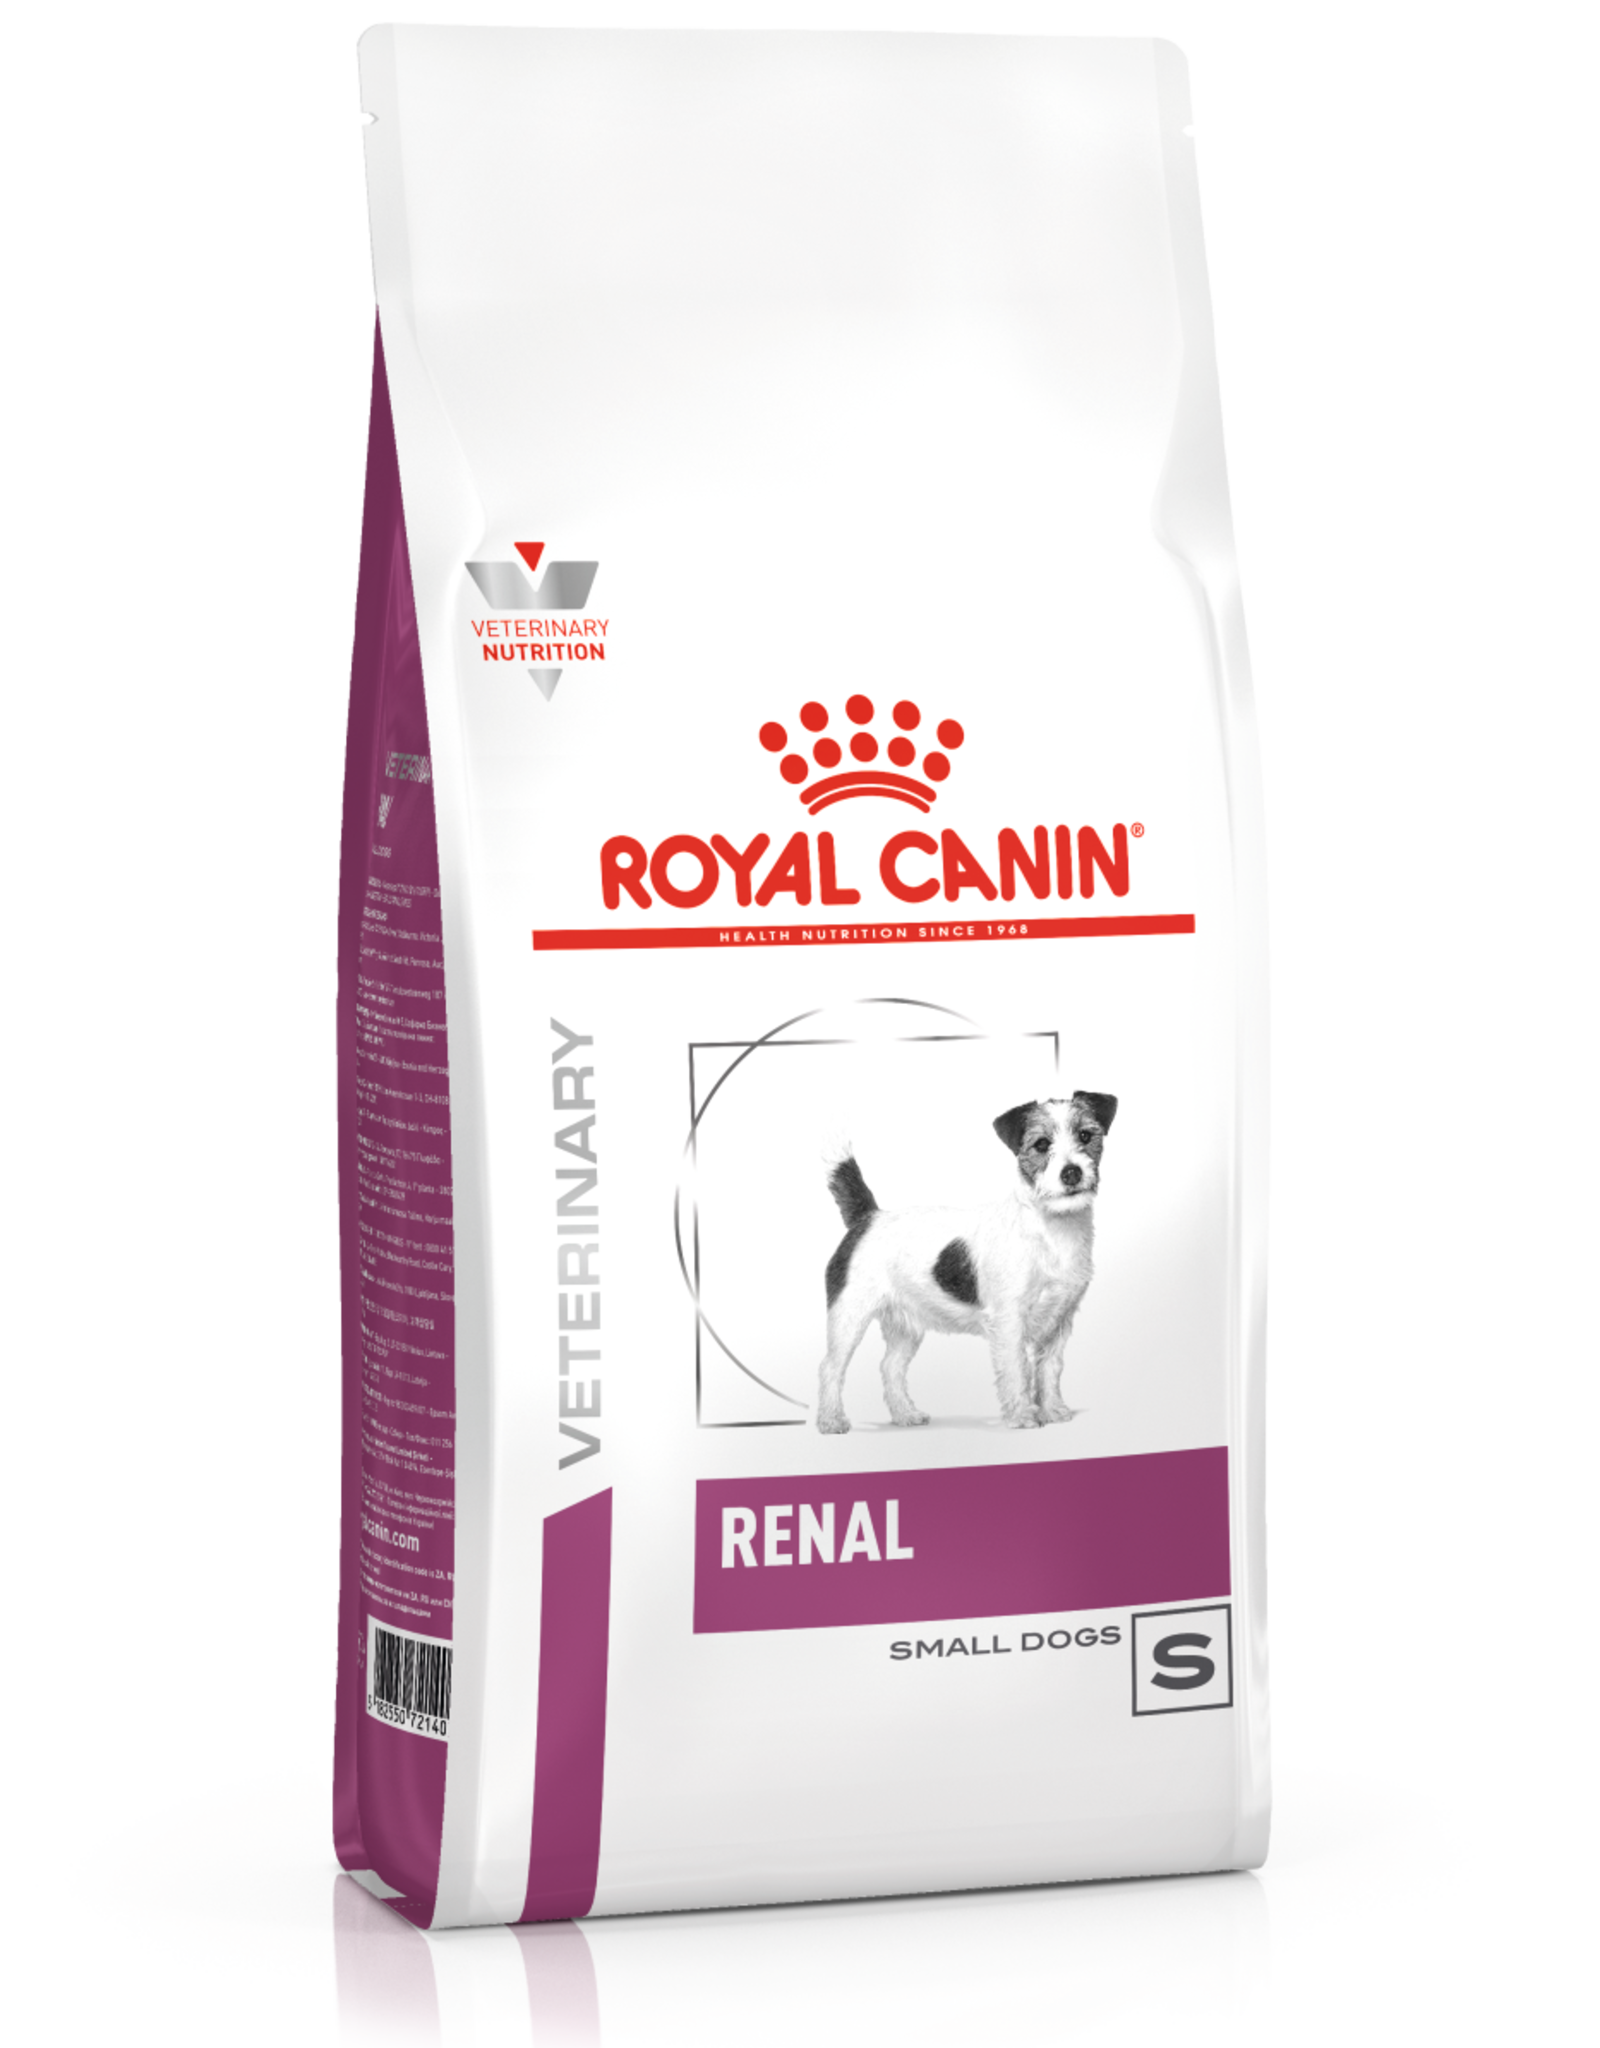 Royal Canin Royal Canin Renal Small Dog 3,5Kg